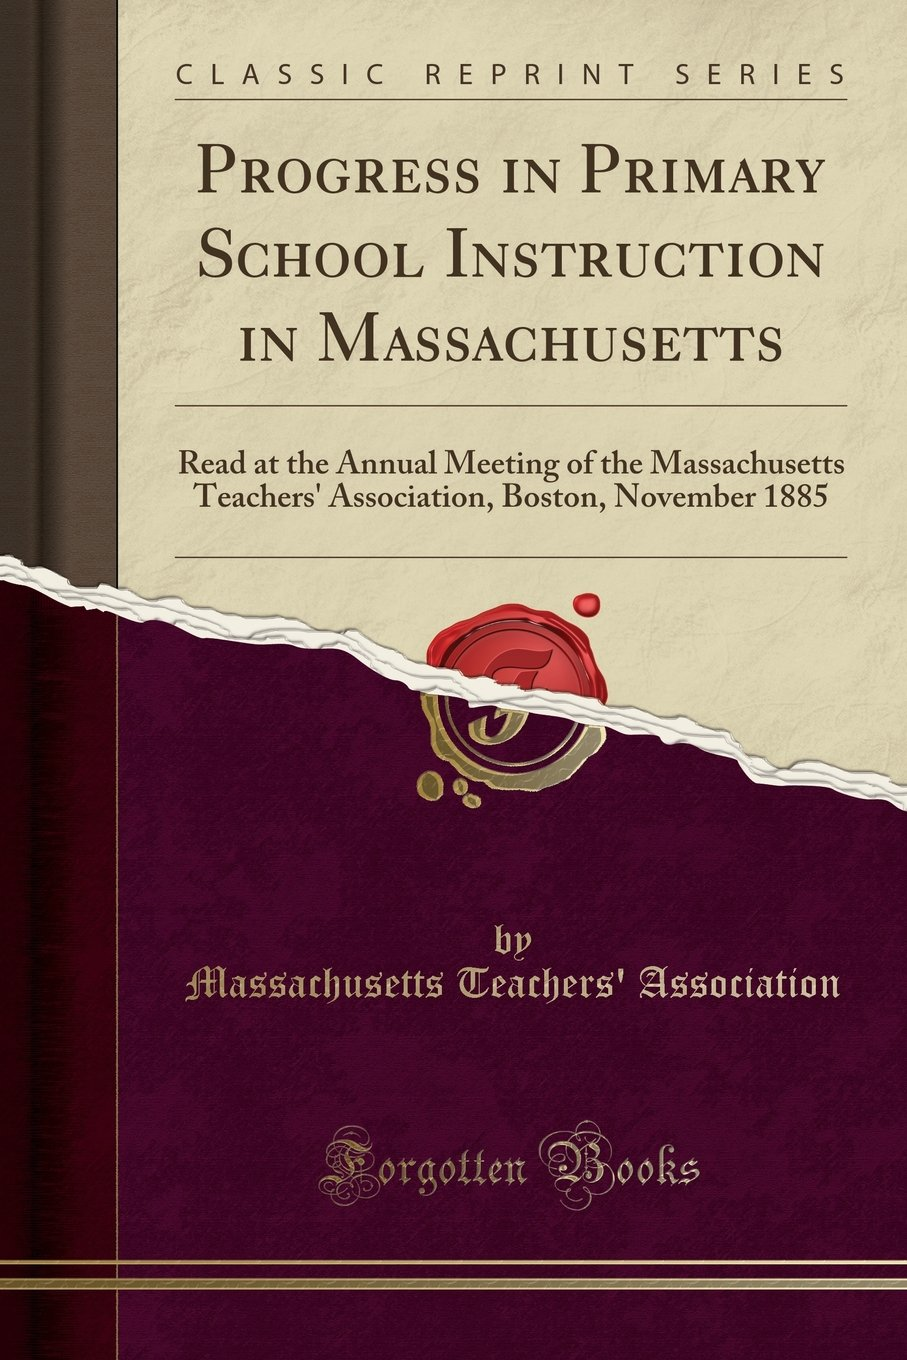 Download Progress in Primary School Instruction in Massachusetts: Read at the Annual Meeting of the Massachusetts Teachers' Association, Boston, November 1885 (Classic Reprint) ebook